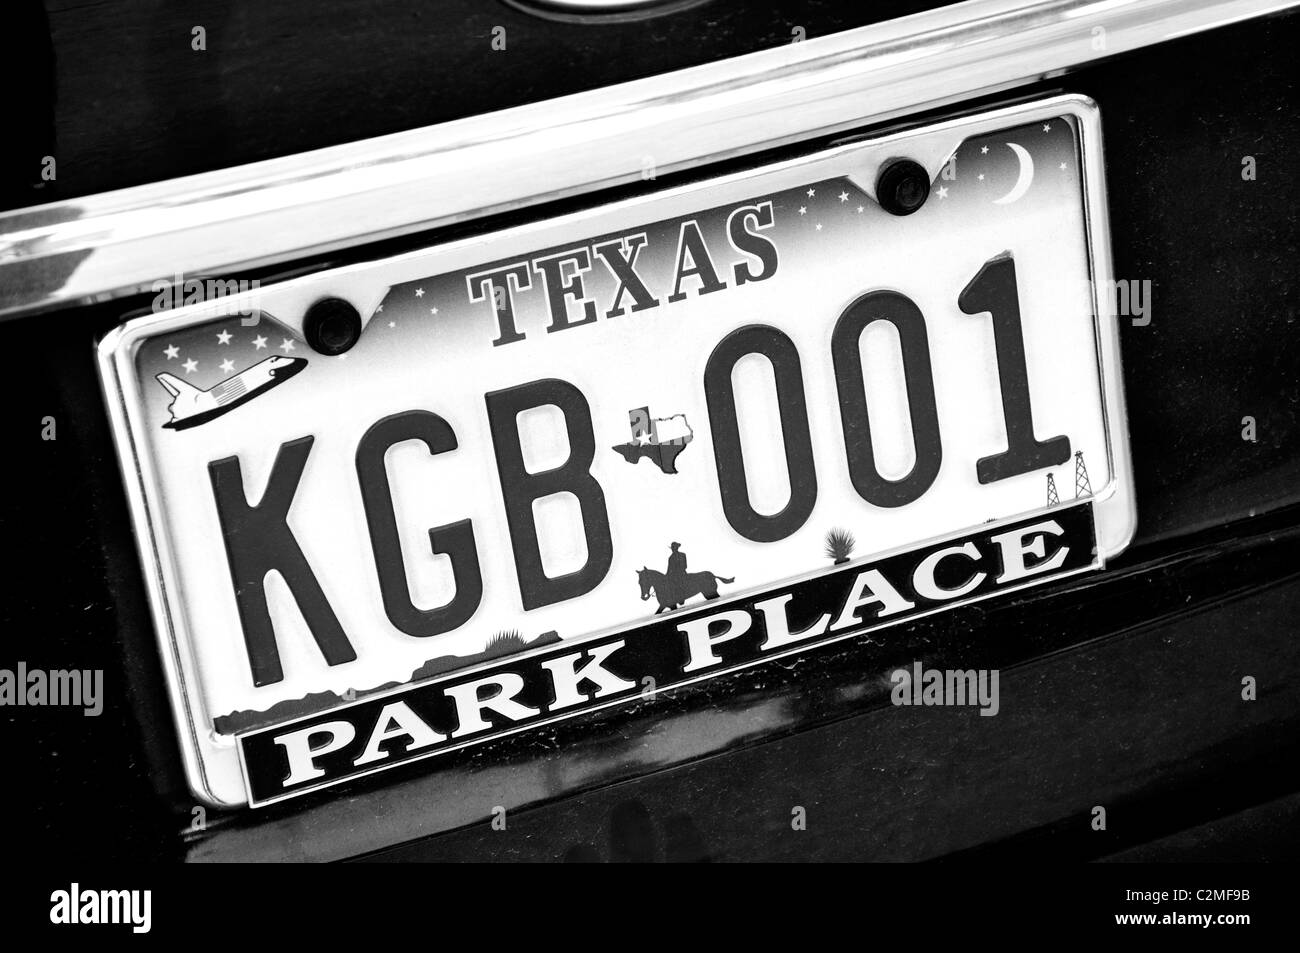 Texas license plate - Stock Image